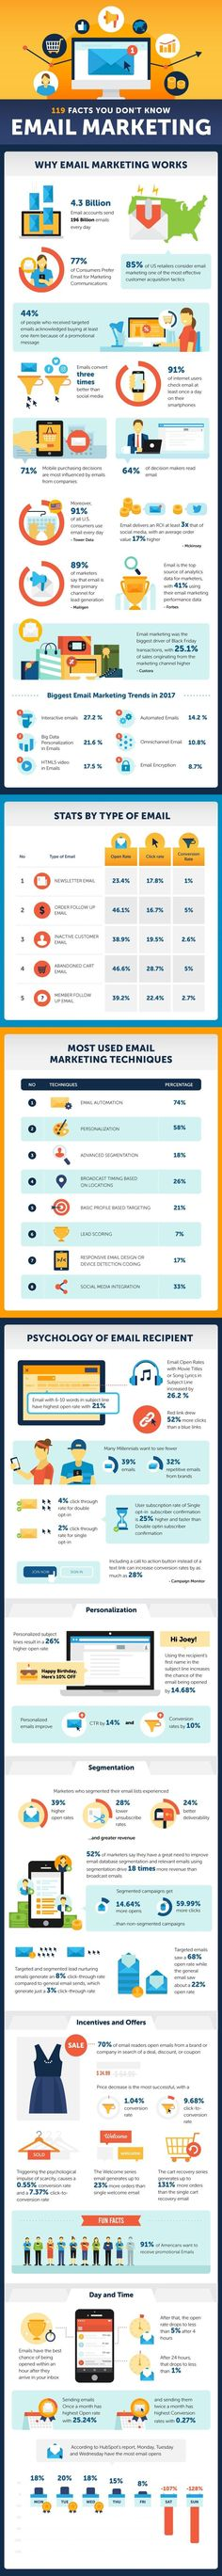 119 Facts You Don't Know About Email Marketing #Infographic #EmailMarketing #Facts